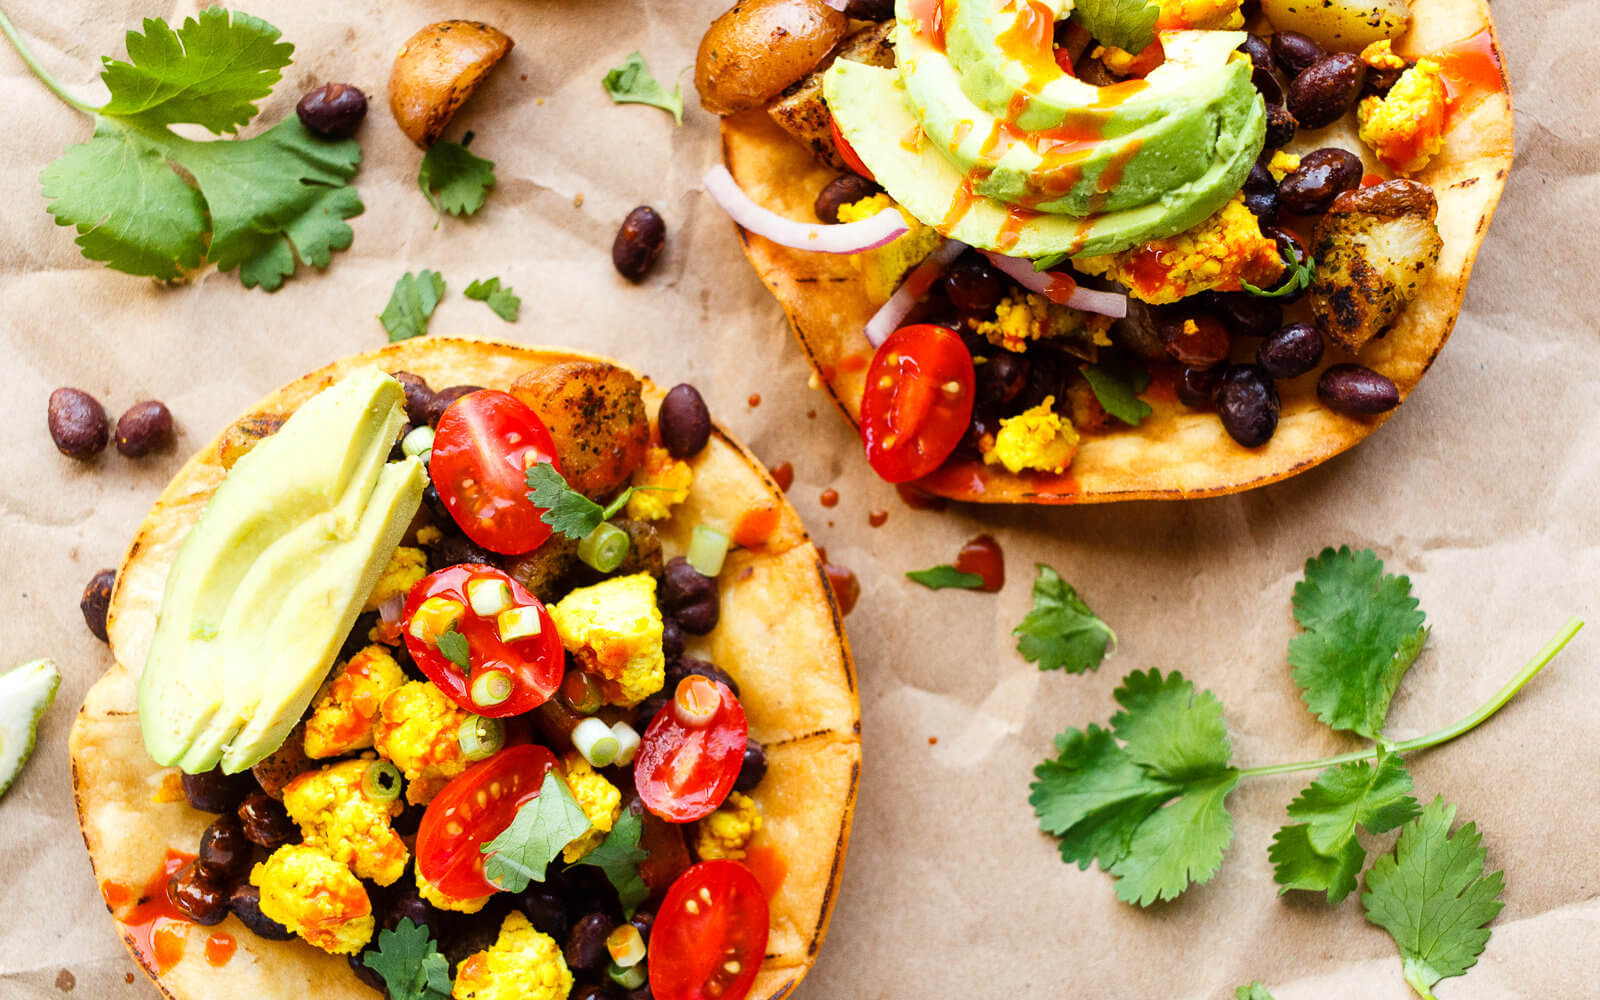 Vegan Breakfast Tostadas